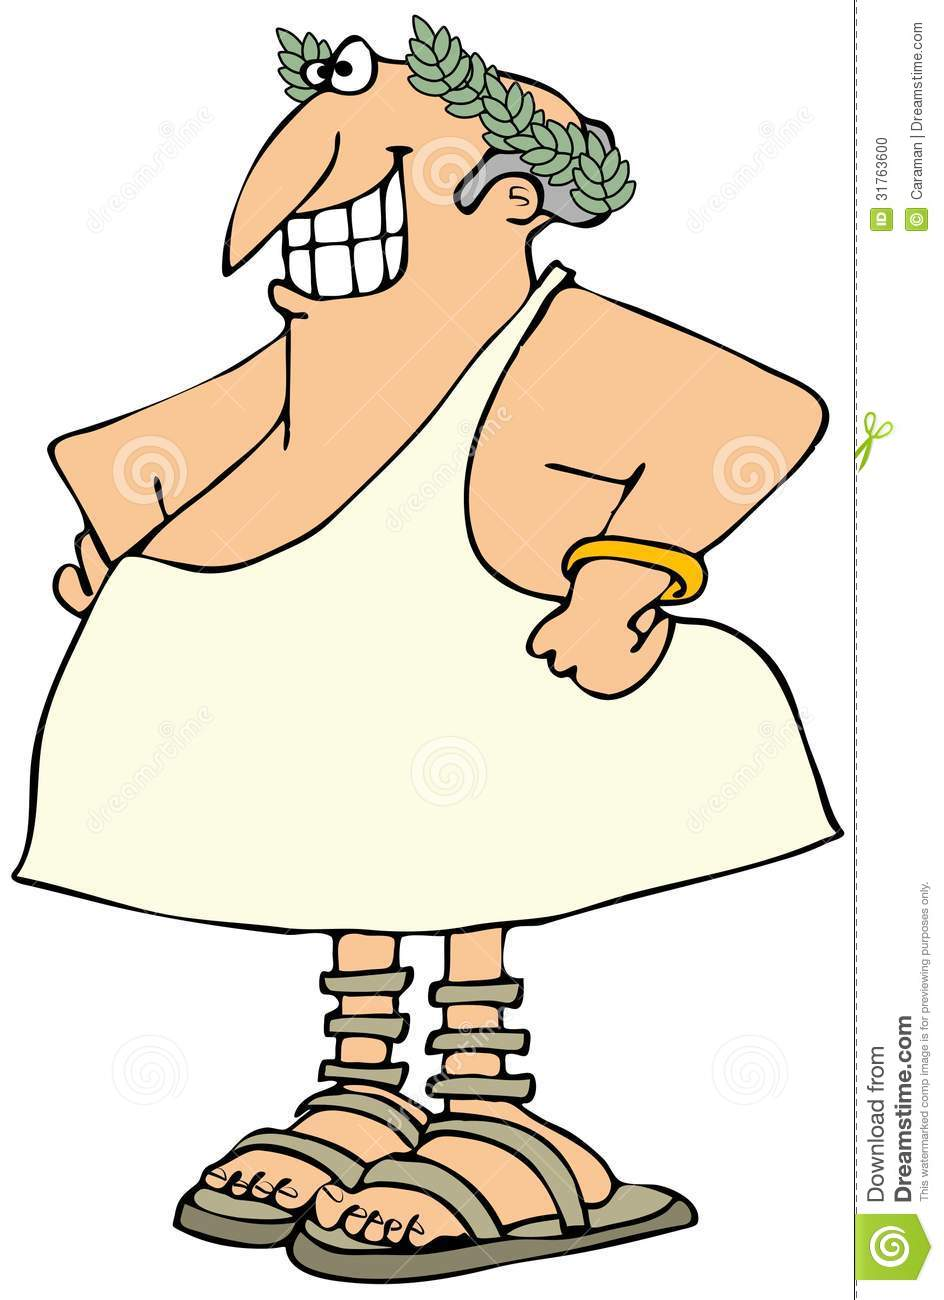 smiling man in a toga stock photo image 31763600 olive branch clip art borders free olive branch clip art free no background